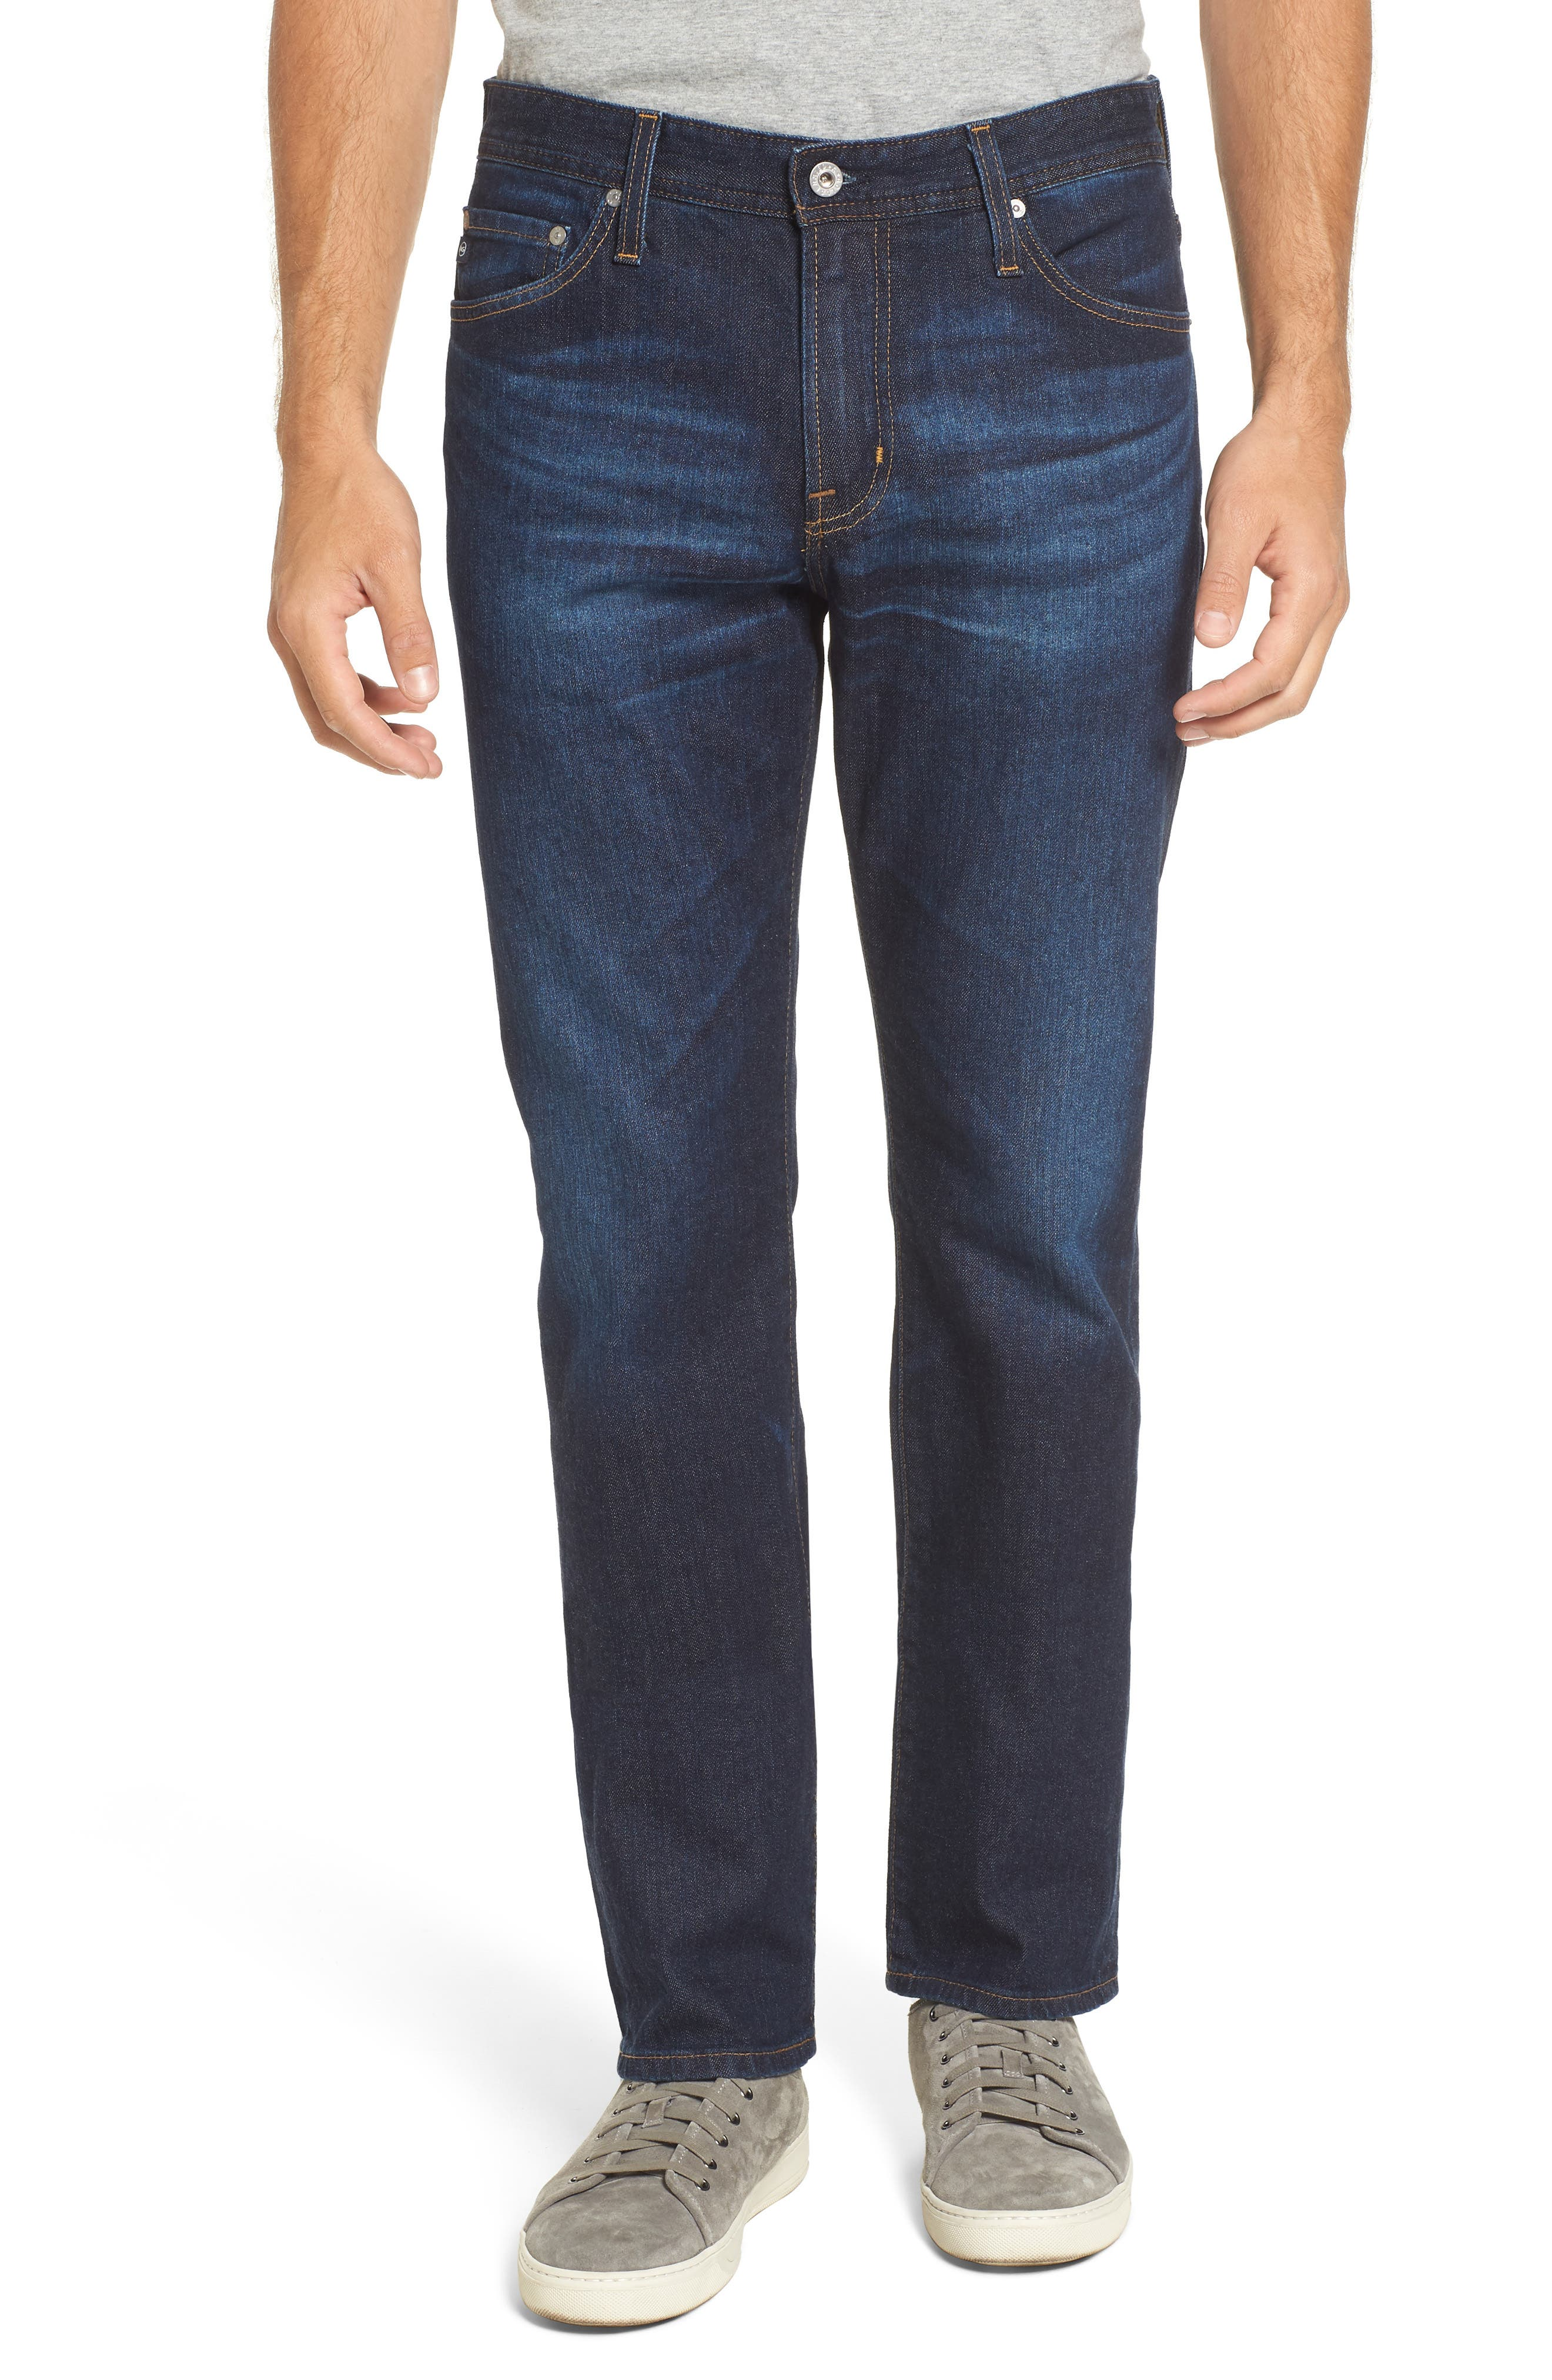 Everett Slim Straight Leg Jeans,                             Main thumbnail 1, color,                             Obscure